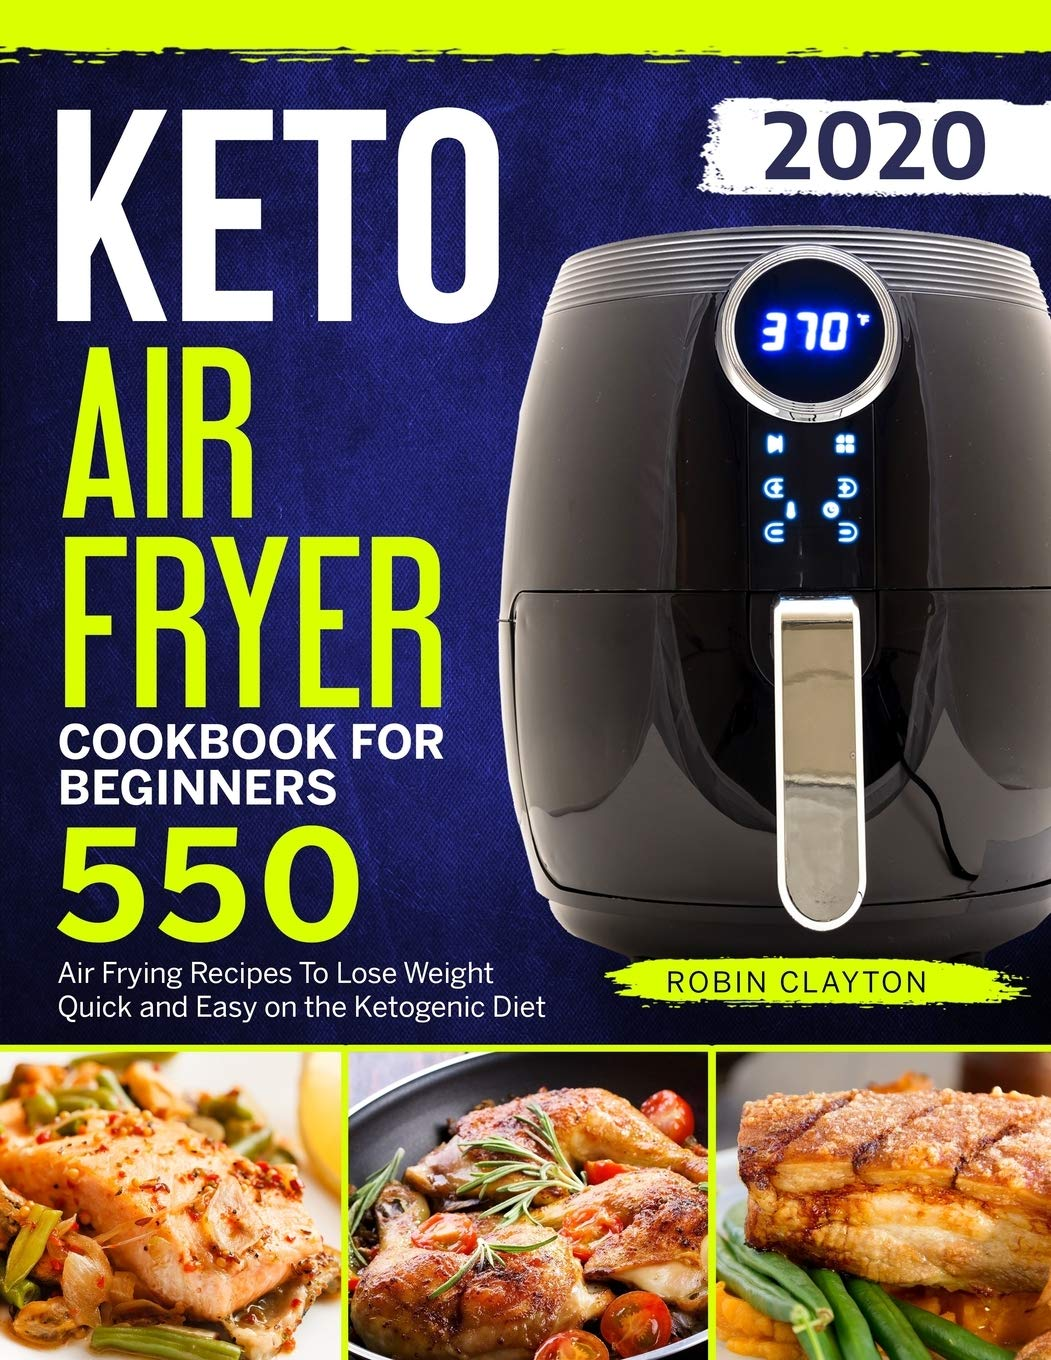 Keto Air Fryer Cookbook For Beginners: 550 Air Frying Recipes To Lose Weight Quick and Easy on the Ketogenic Diet (Keto Air Fryer Recipes) 1